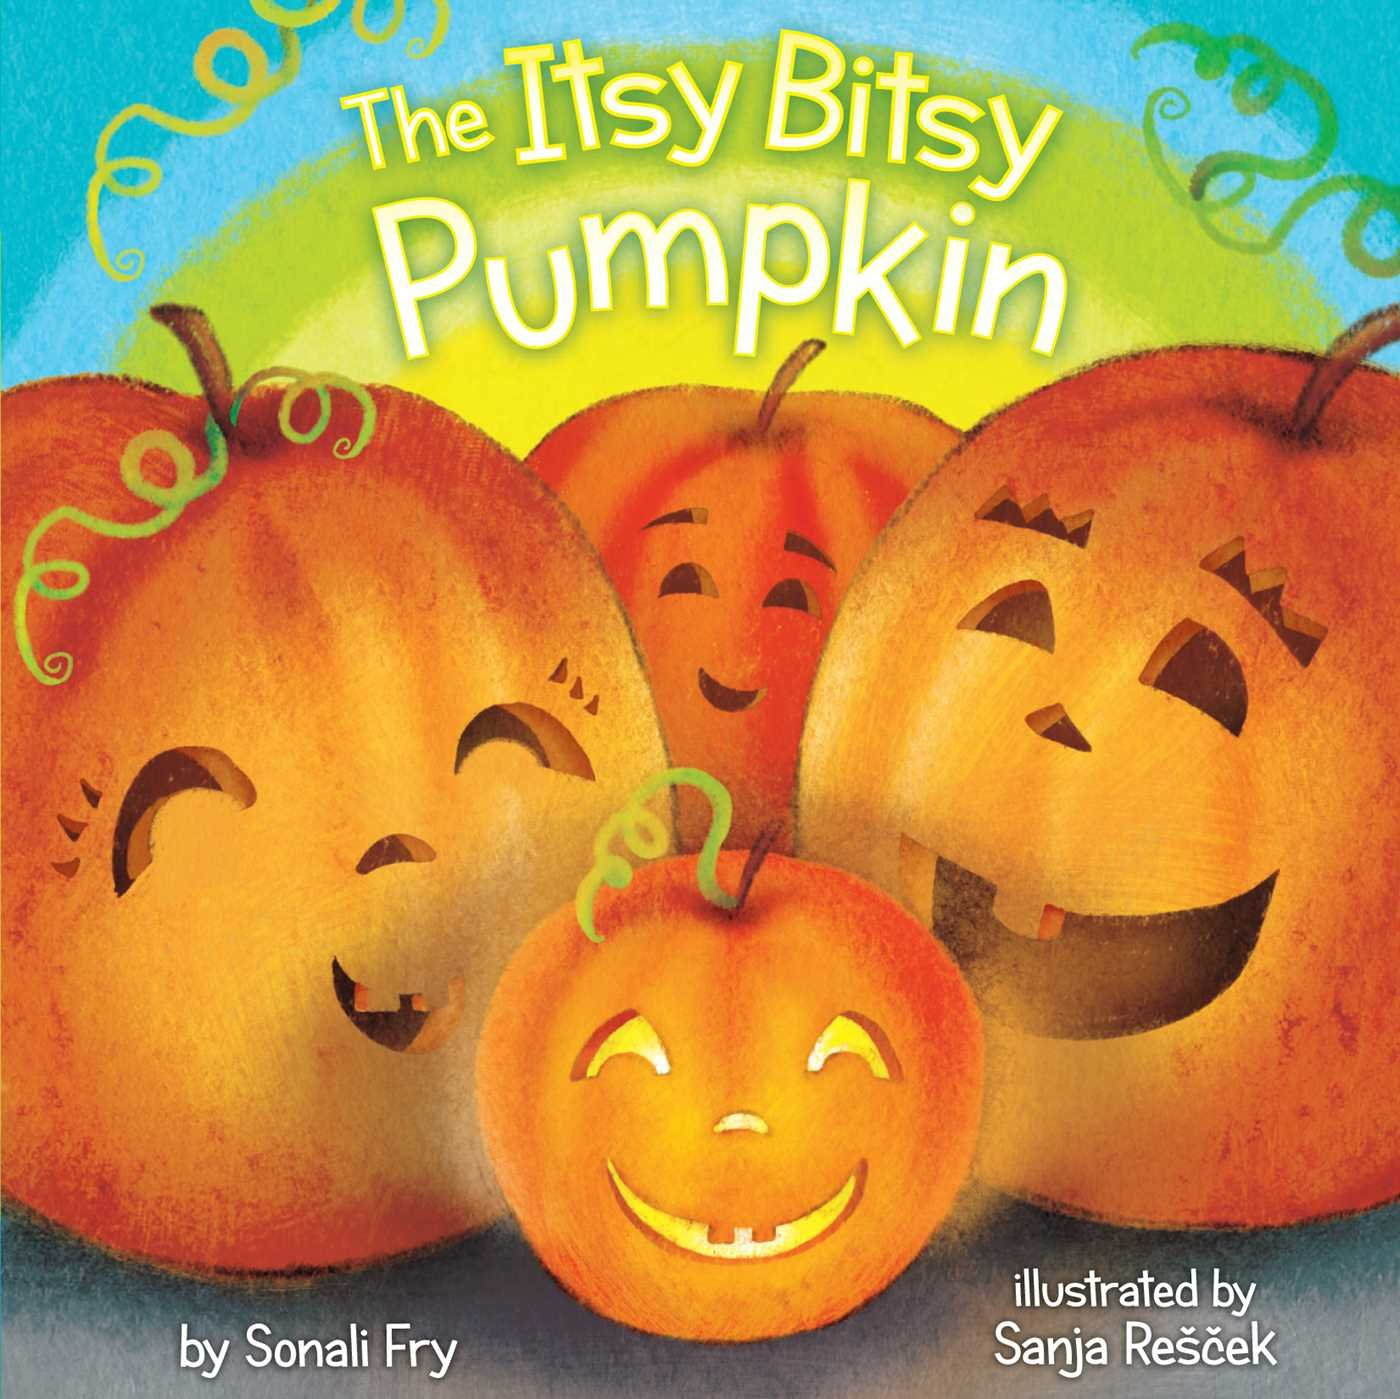 Enjoy a fun twist on a classic song in The Itsy Bitsy Pumpkin.